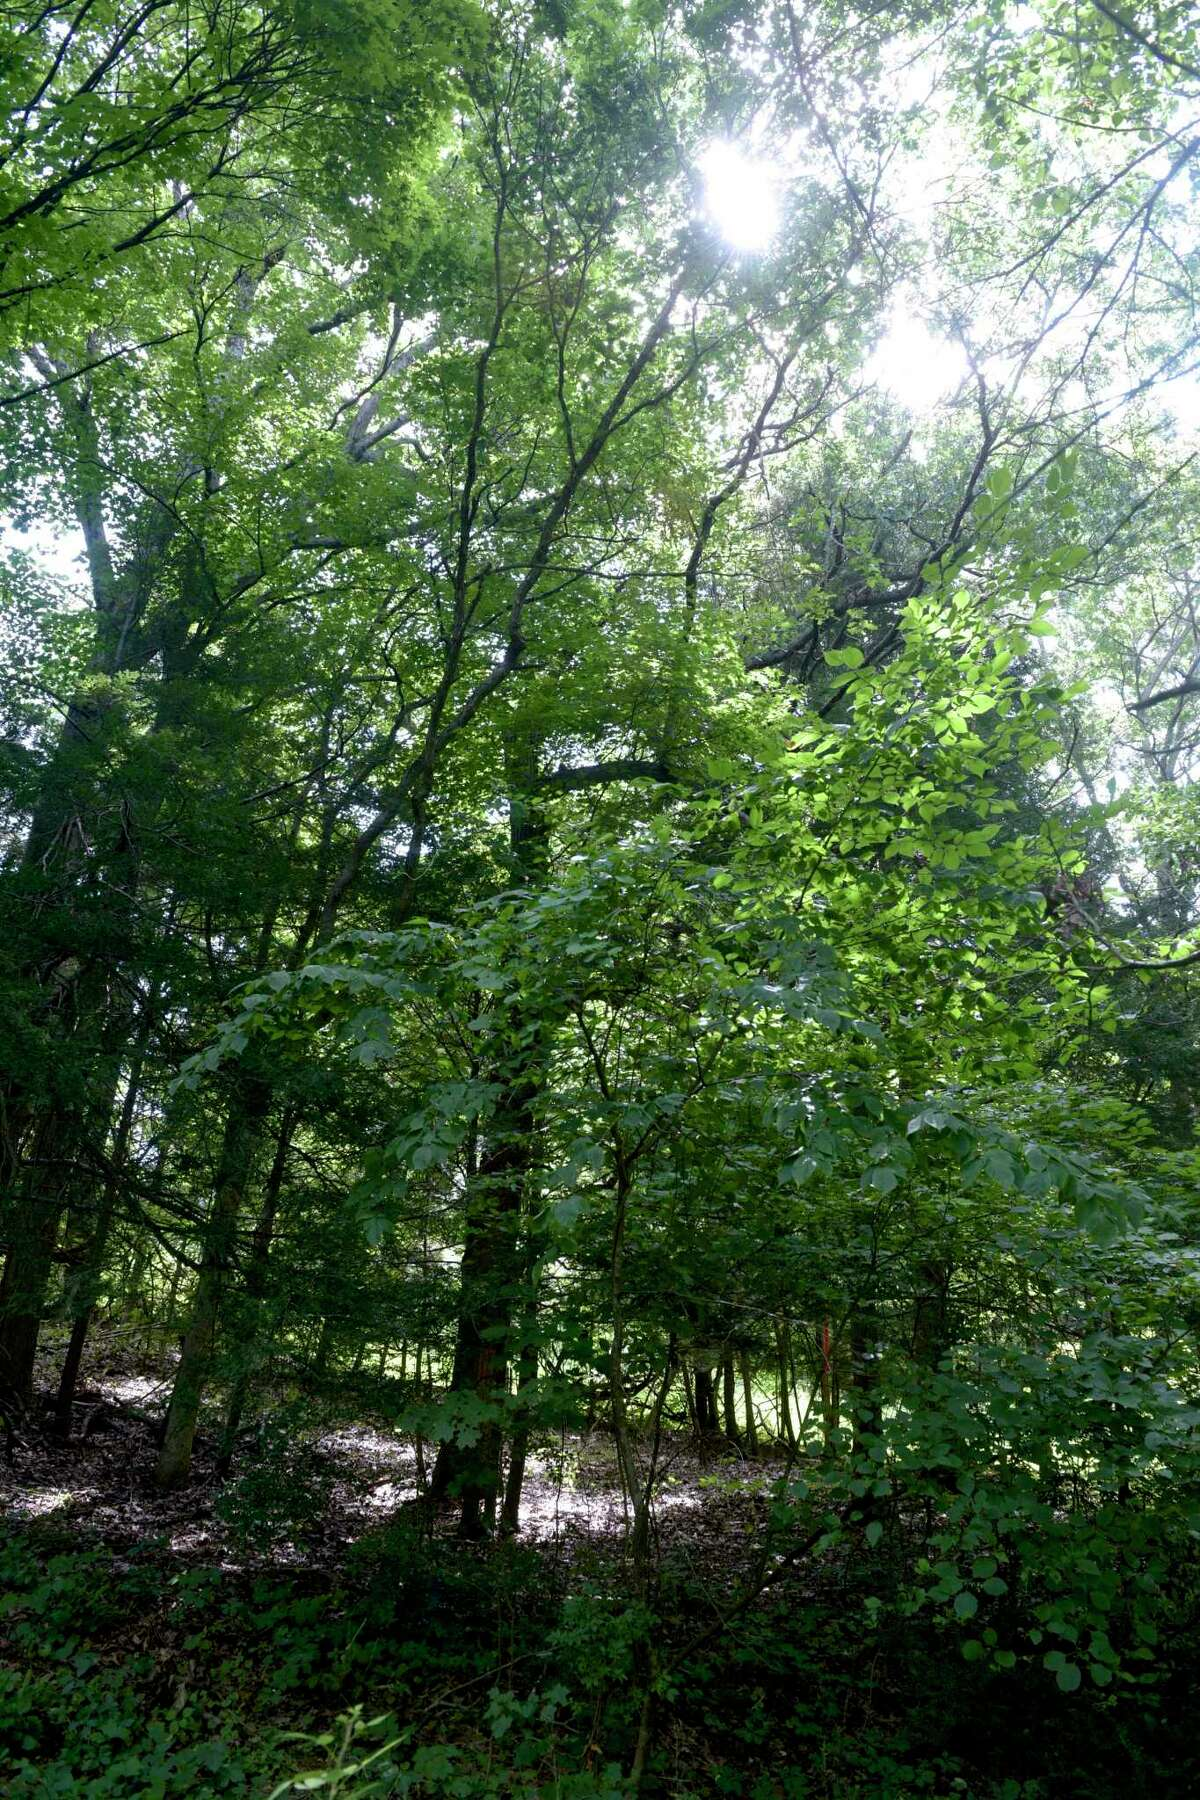 """Kelly Douthitt-Wilson and her neighbors are upset that Eversource plans to take down trees at the rear of their properties on Old Lantern Road. Eversource said crews will be removing """"tall-growing species from the rights of way and cut branches extending into the rights of way."""" Pictured on Friday in New Milford."""